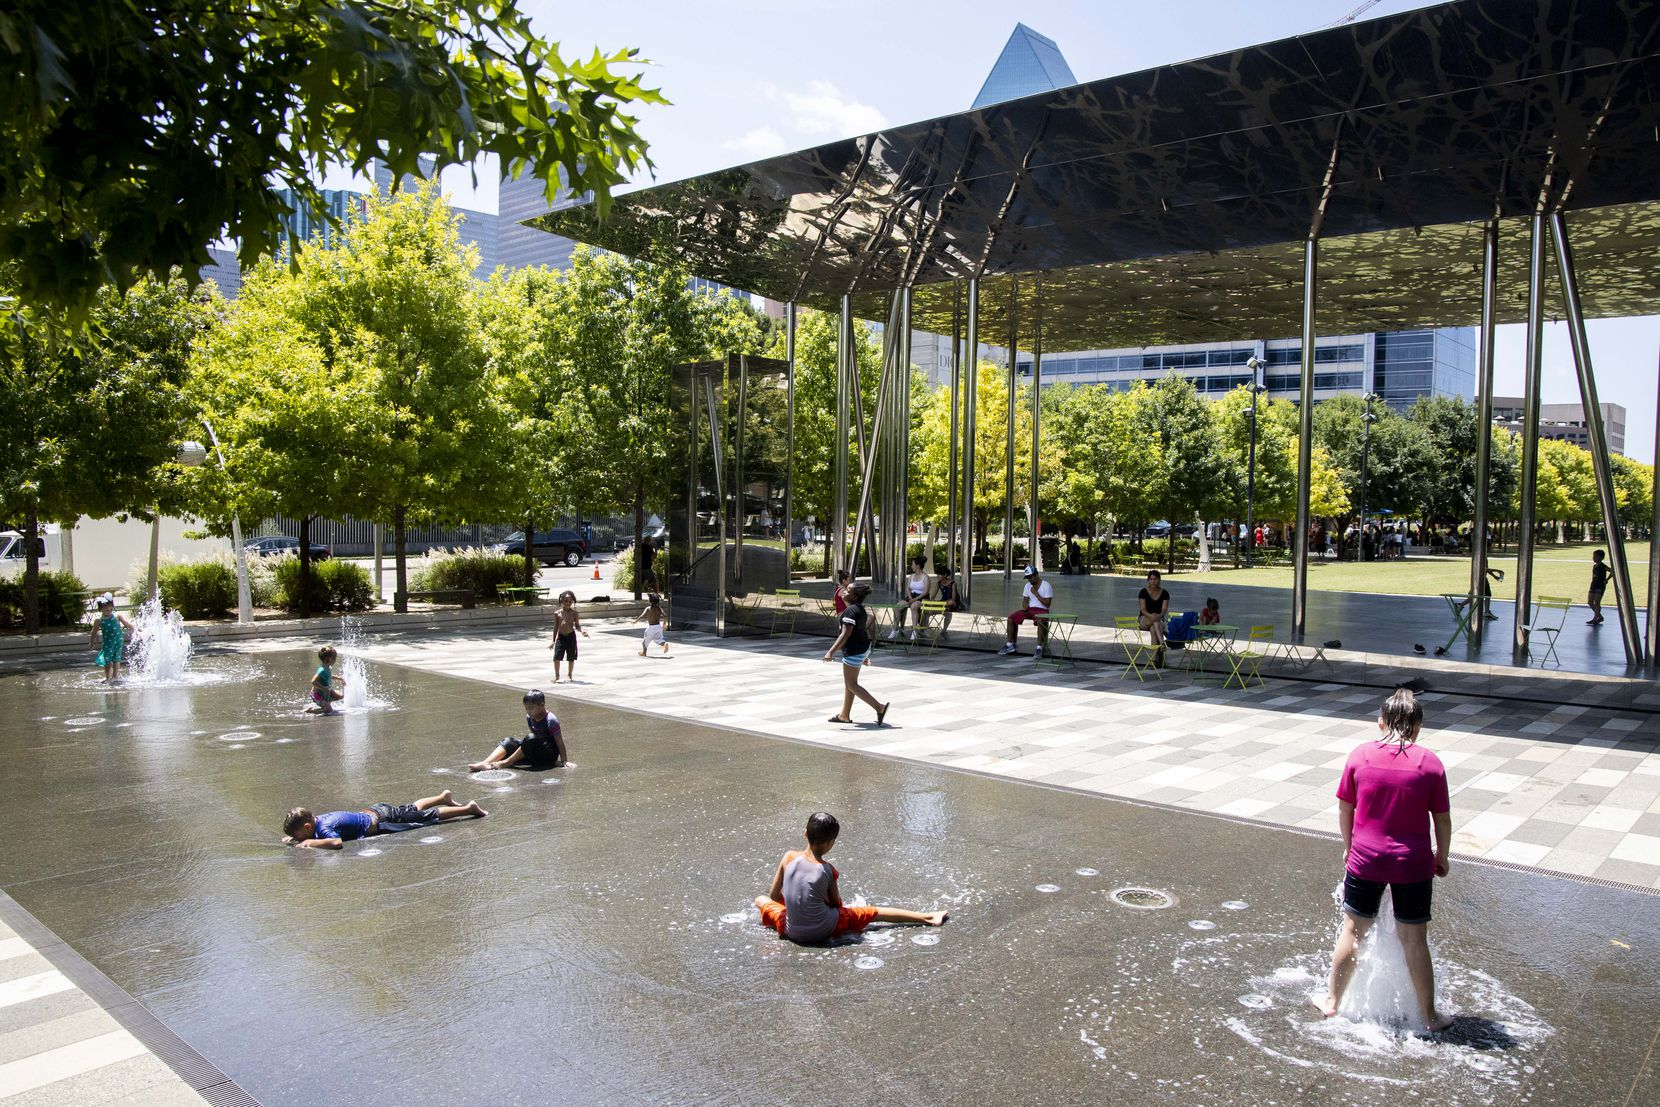 Kids cooled down in a water park at Klyde Warren Park on Tuesday. In Dallas-Fort Worth, an average summer high is about 94 degrees, according to the National Weather Service.